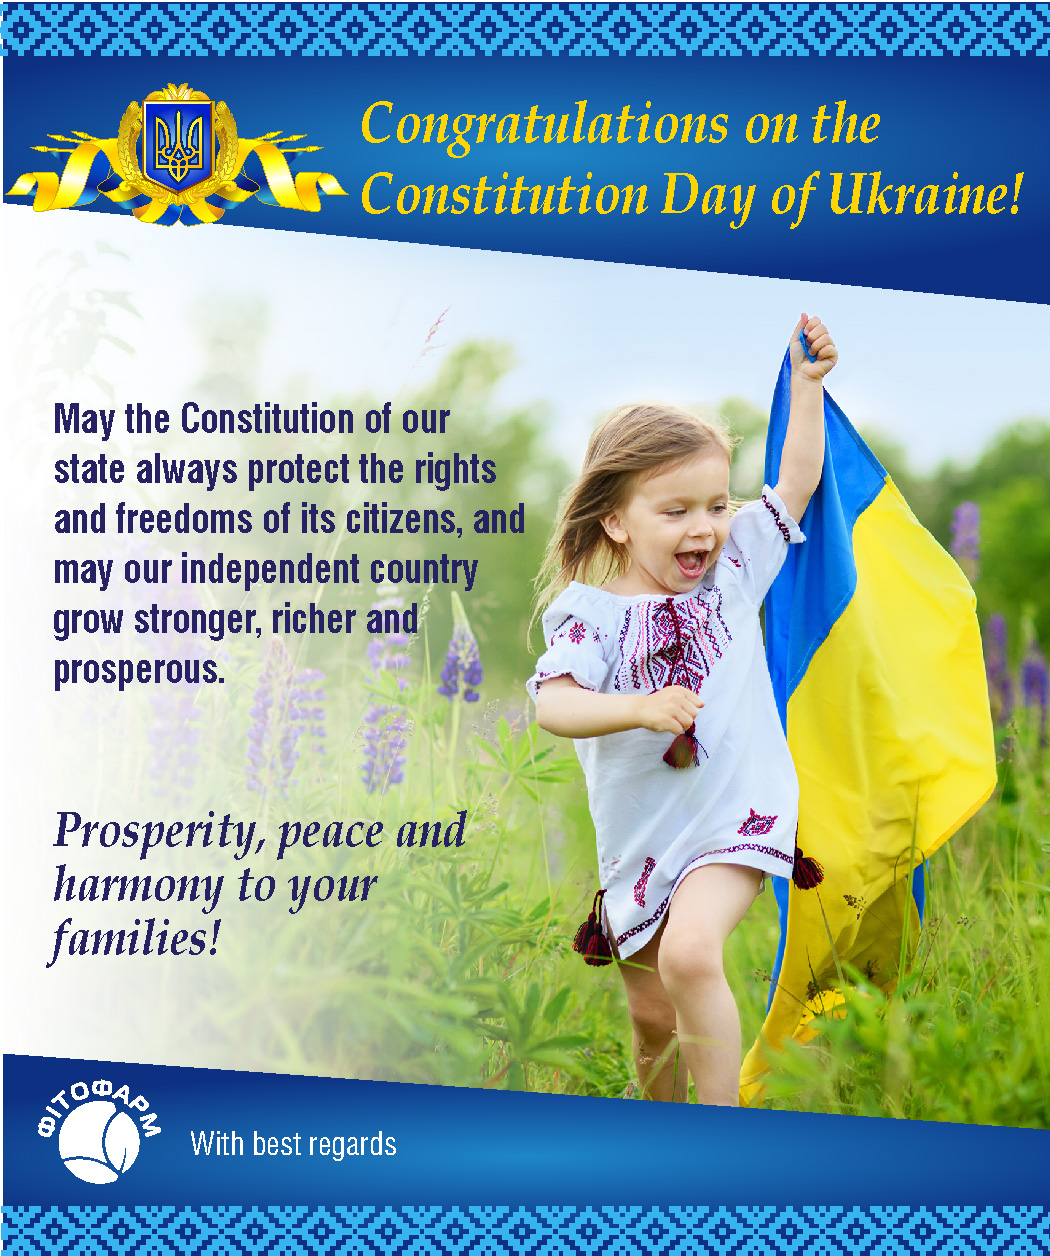 Congratulations on the Constitution Day of Ukraine!